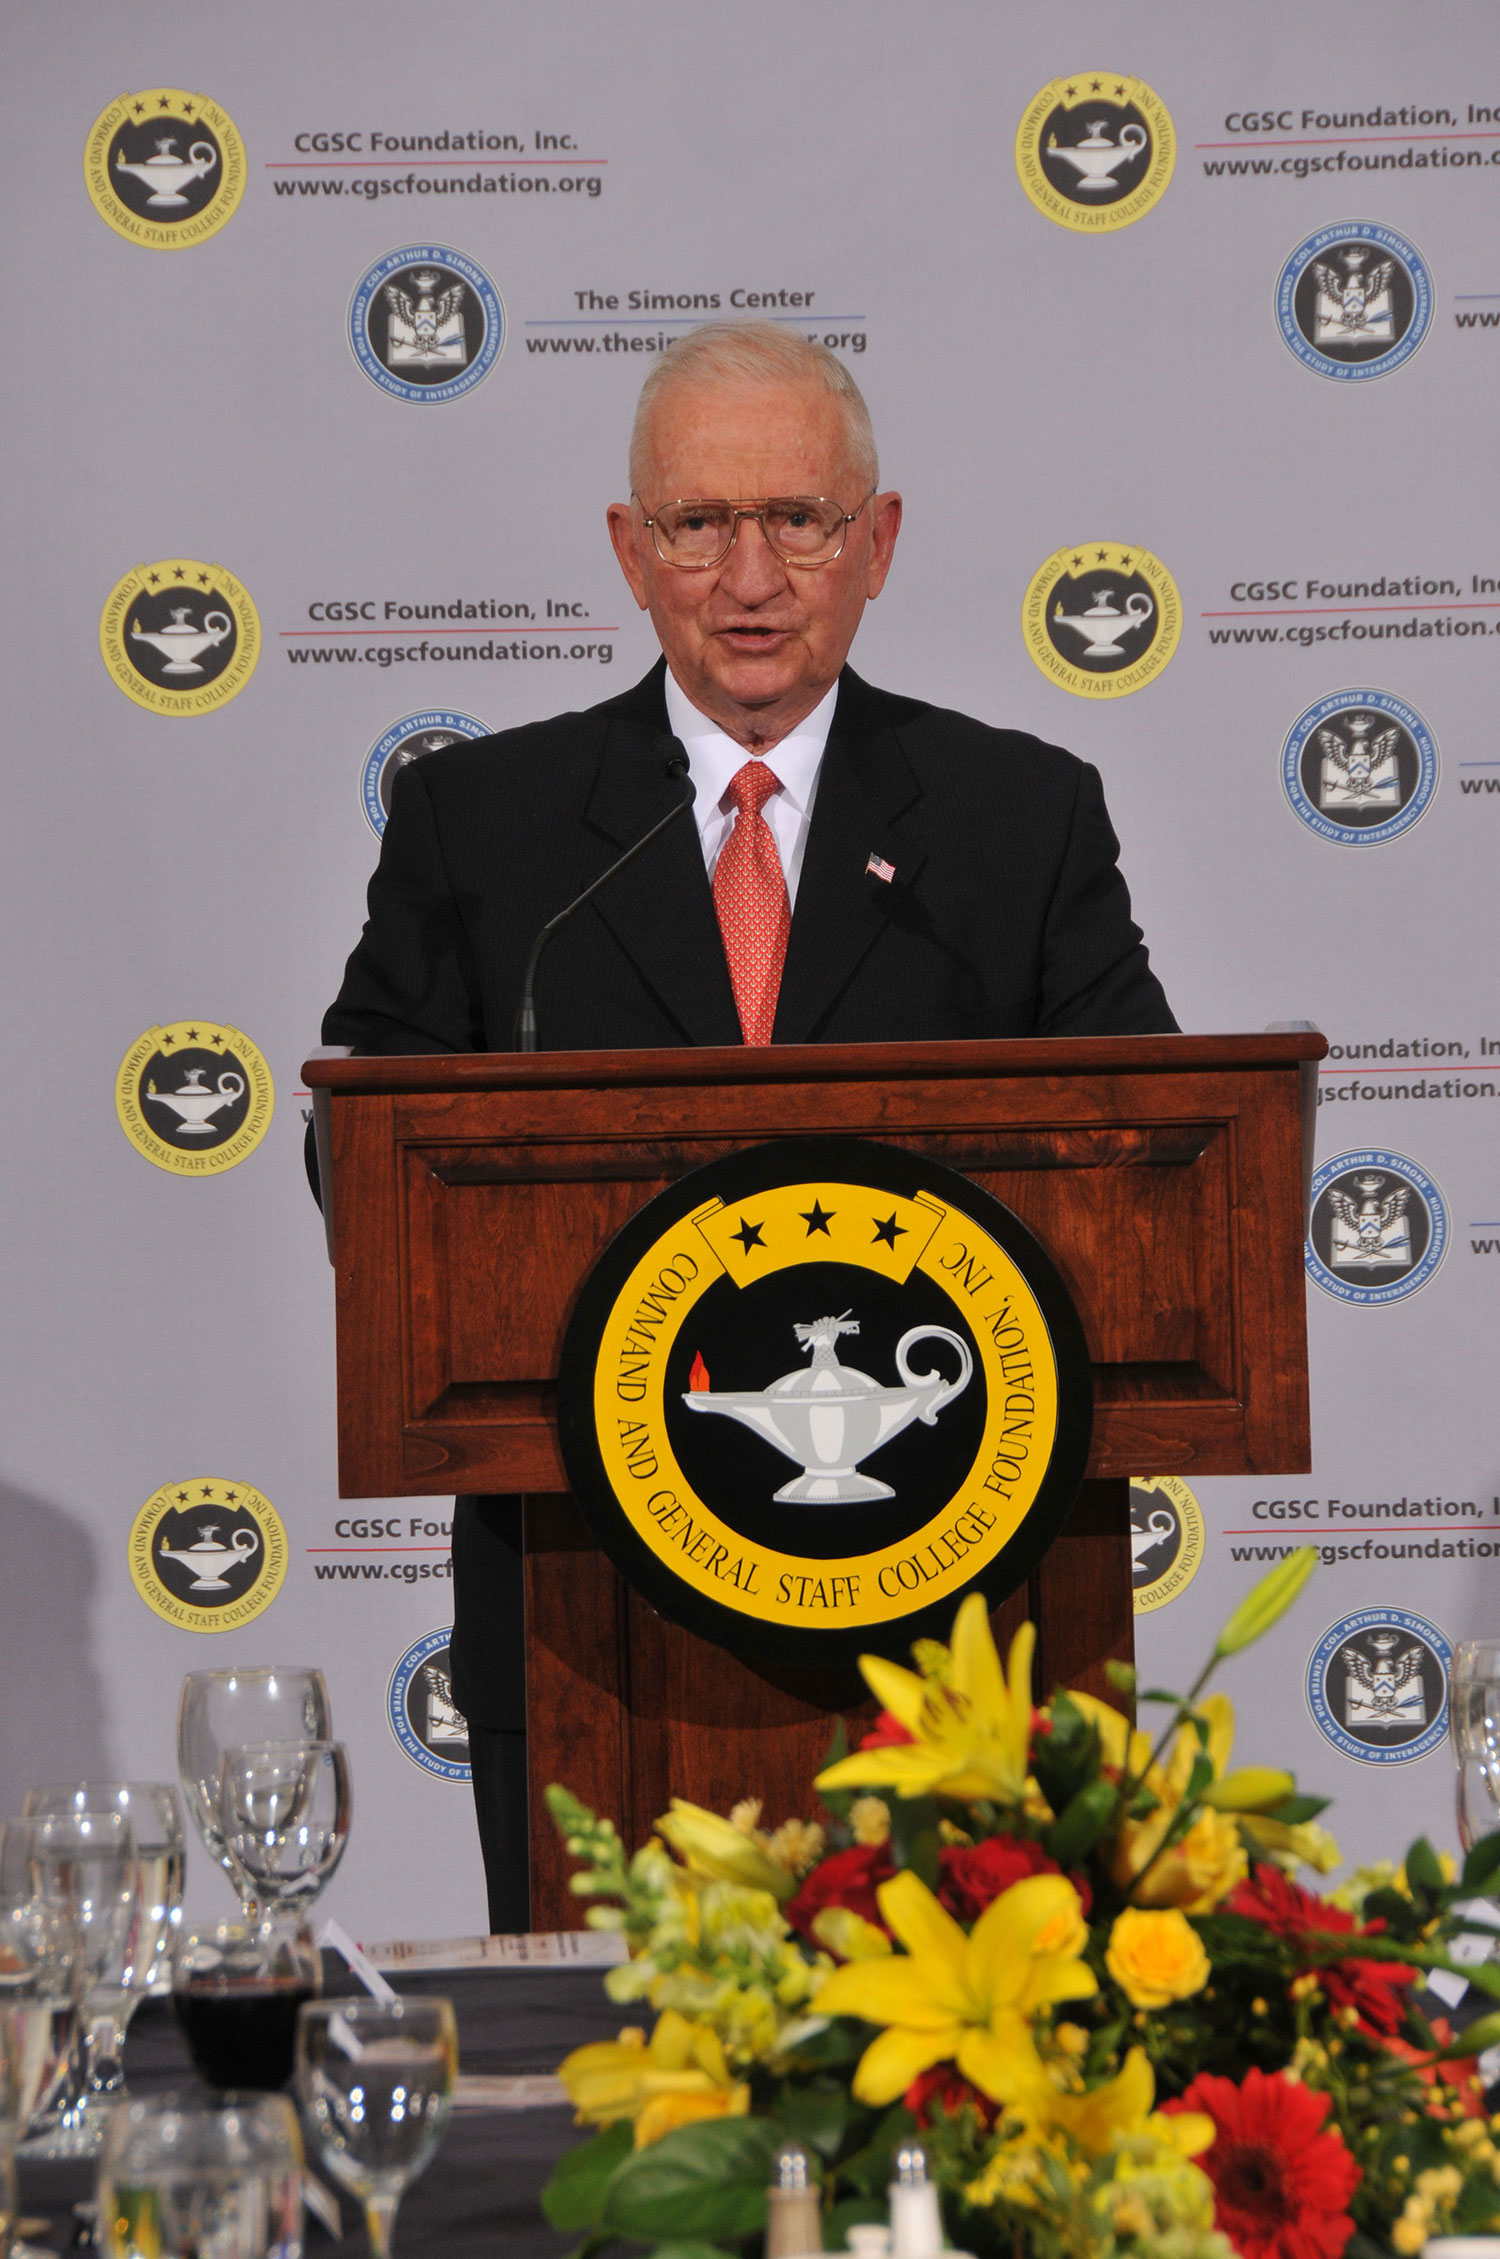 Mr. Ross Perot delivers remarks during the CGSC Foundation's Distinguished Leadership Award dinner in honor of Gen. Hugh Shelton in April 2011.